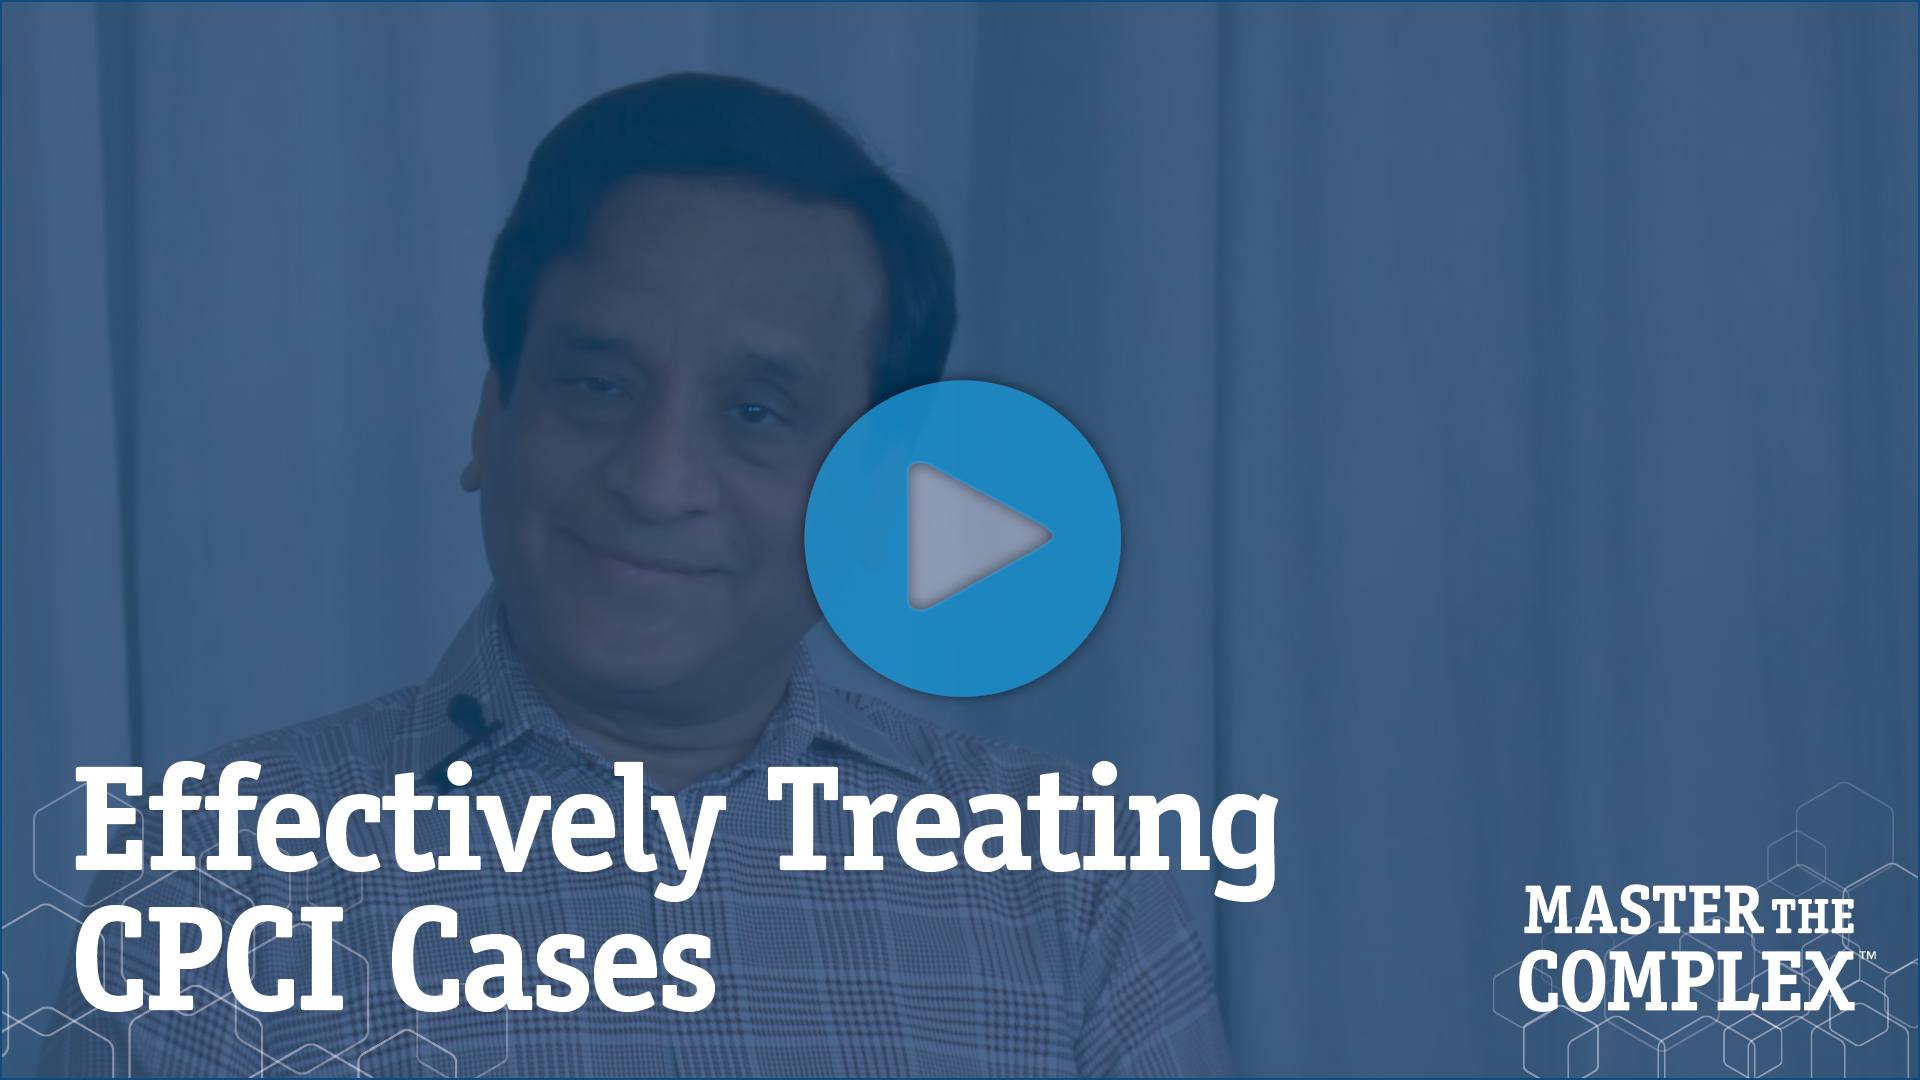 What do you believe are the best ways for physicians to gain expertise at effectively treating Complex PCI cases? Listen to what the experts have to say.